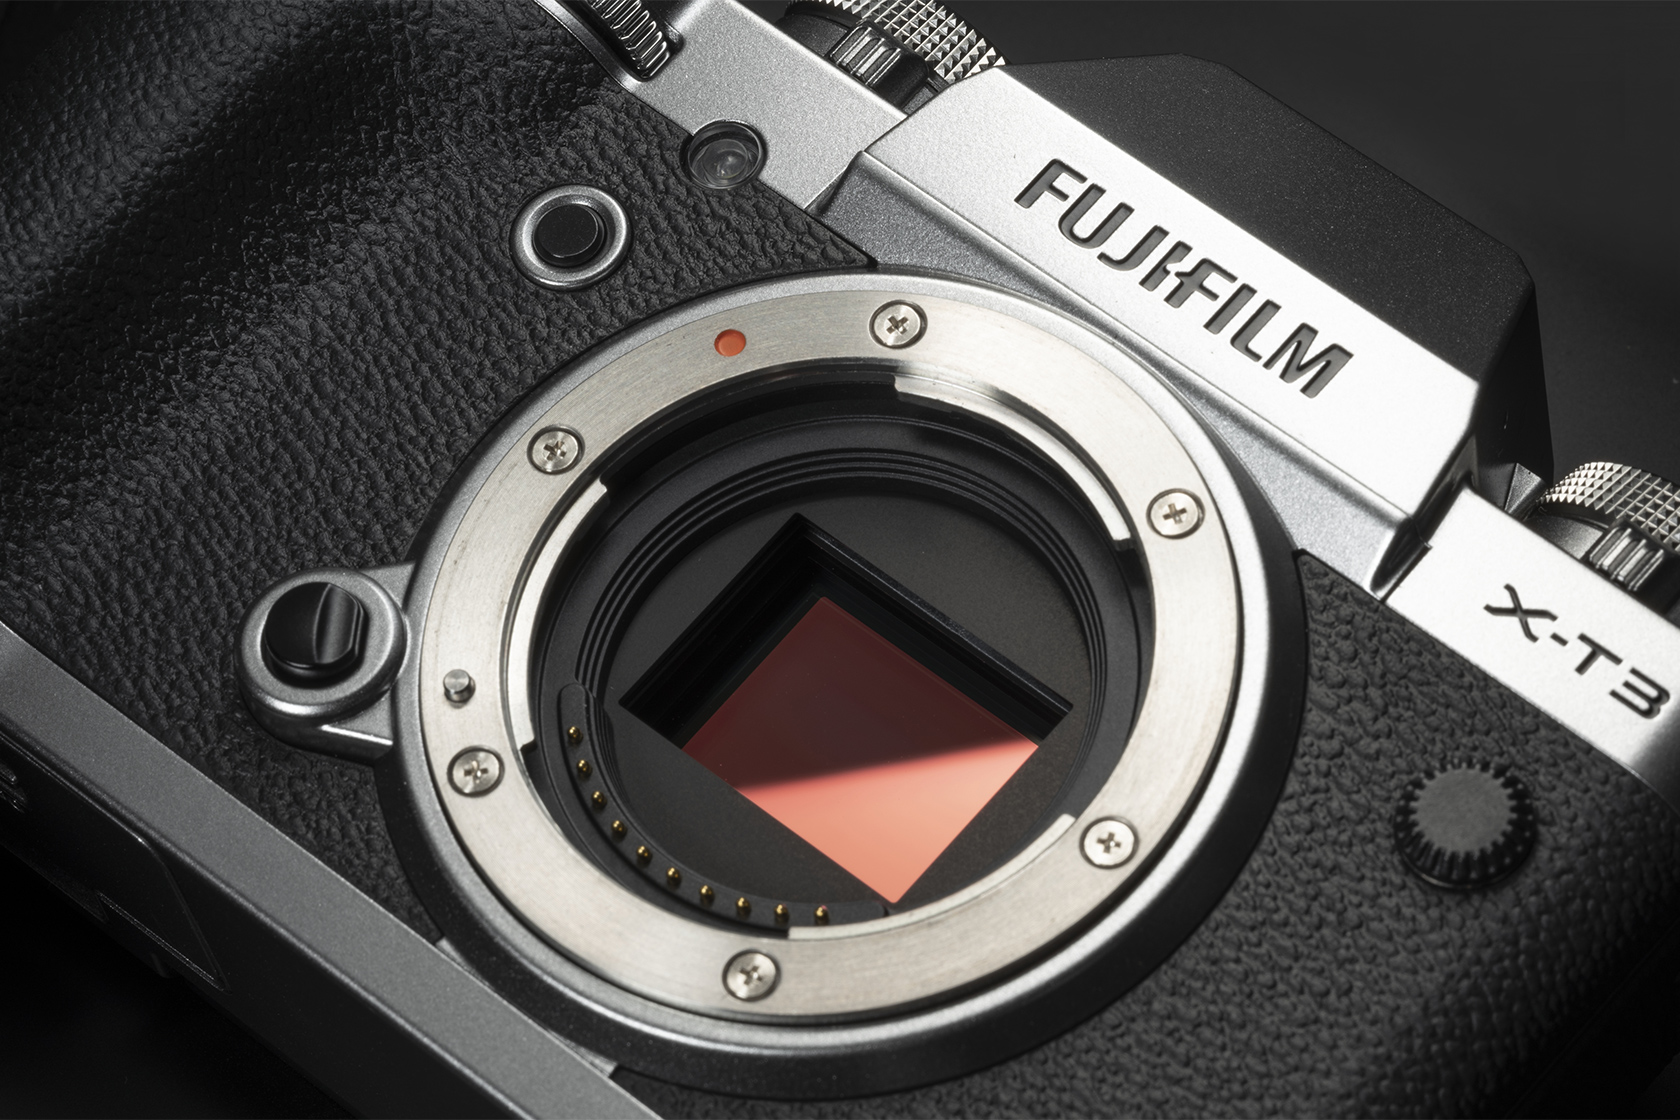 Zoomed in image of X-T3 camera